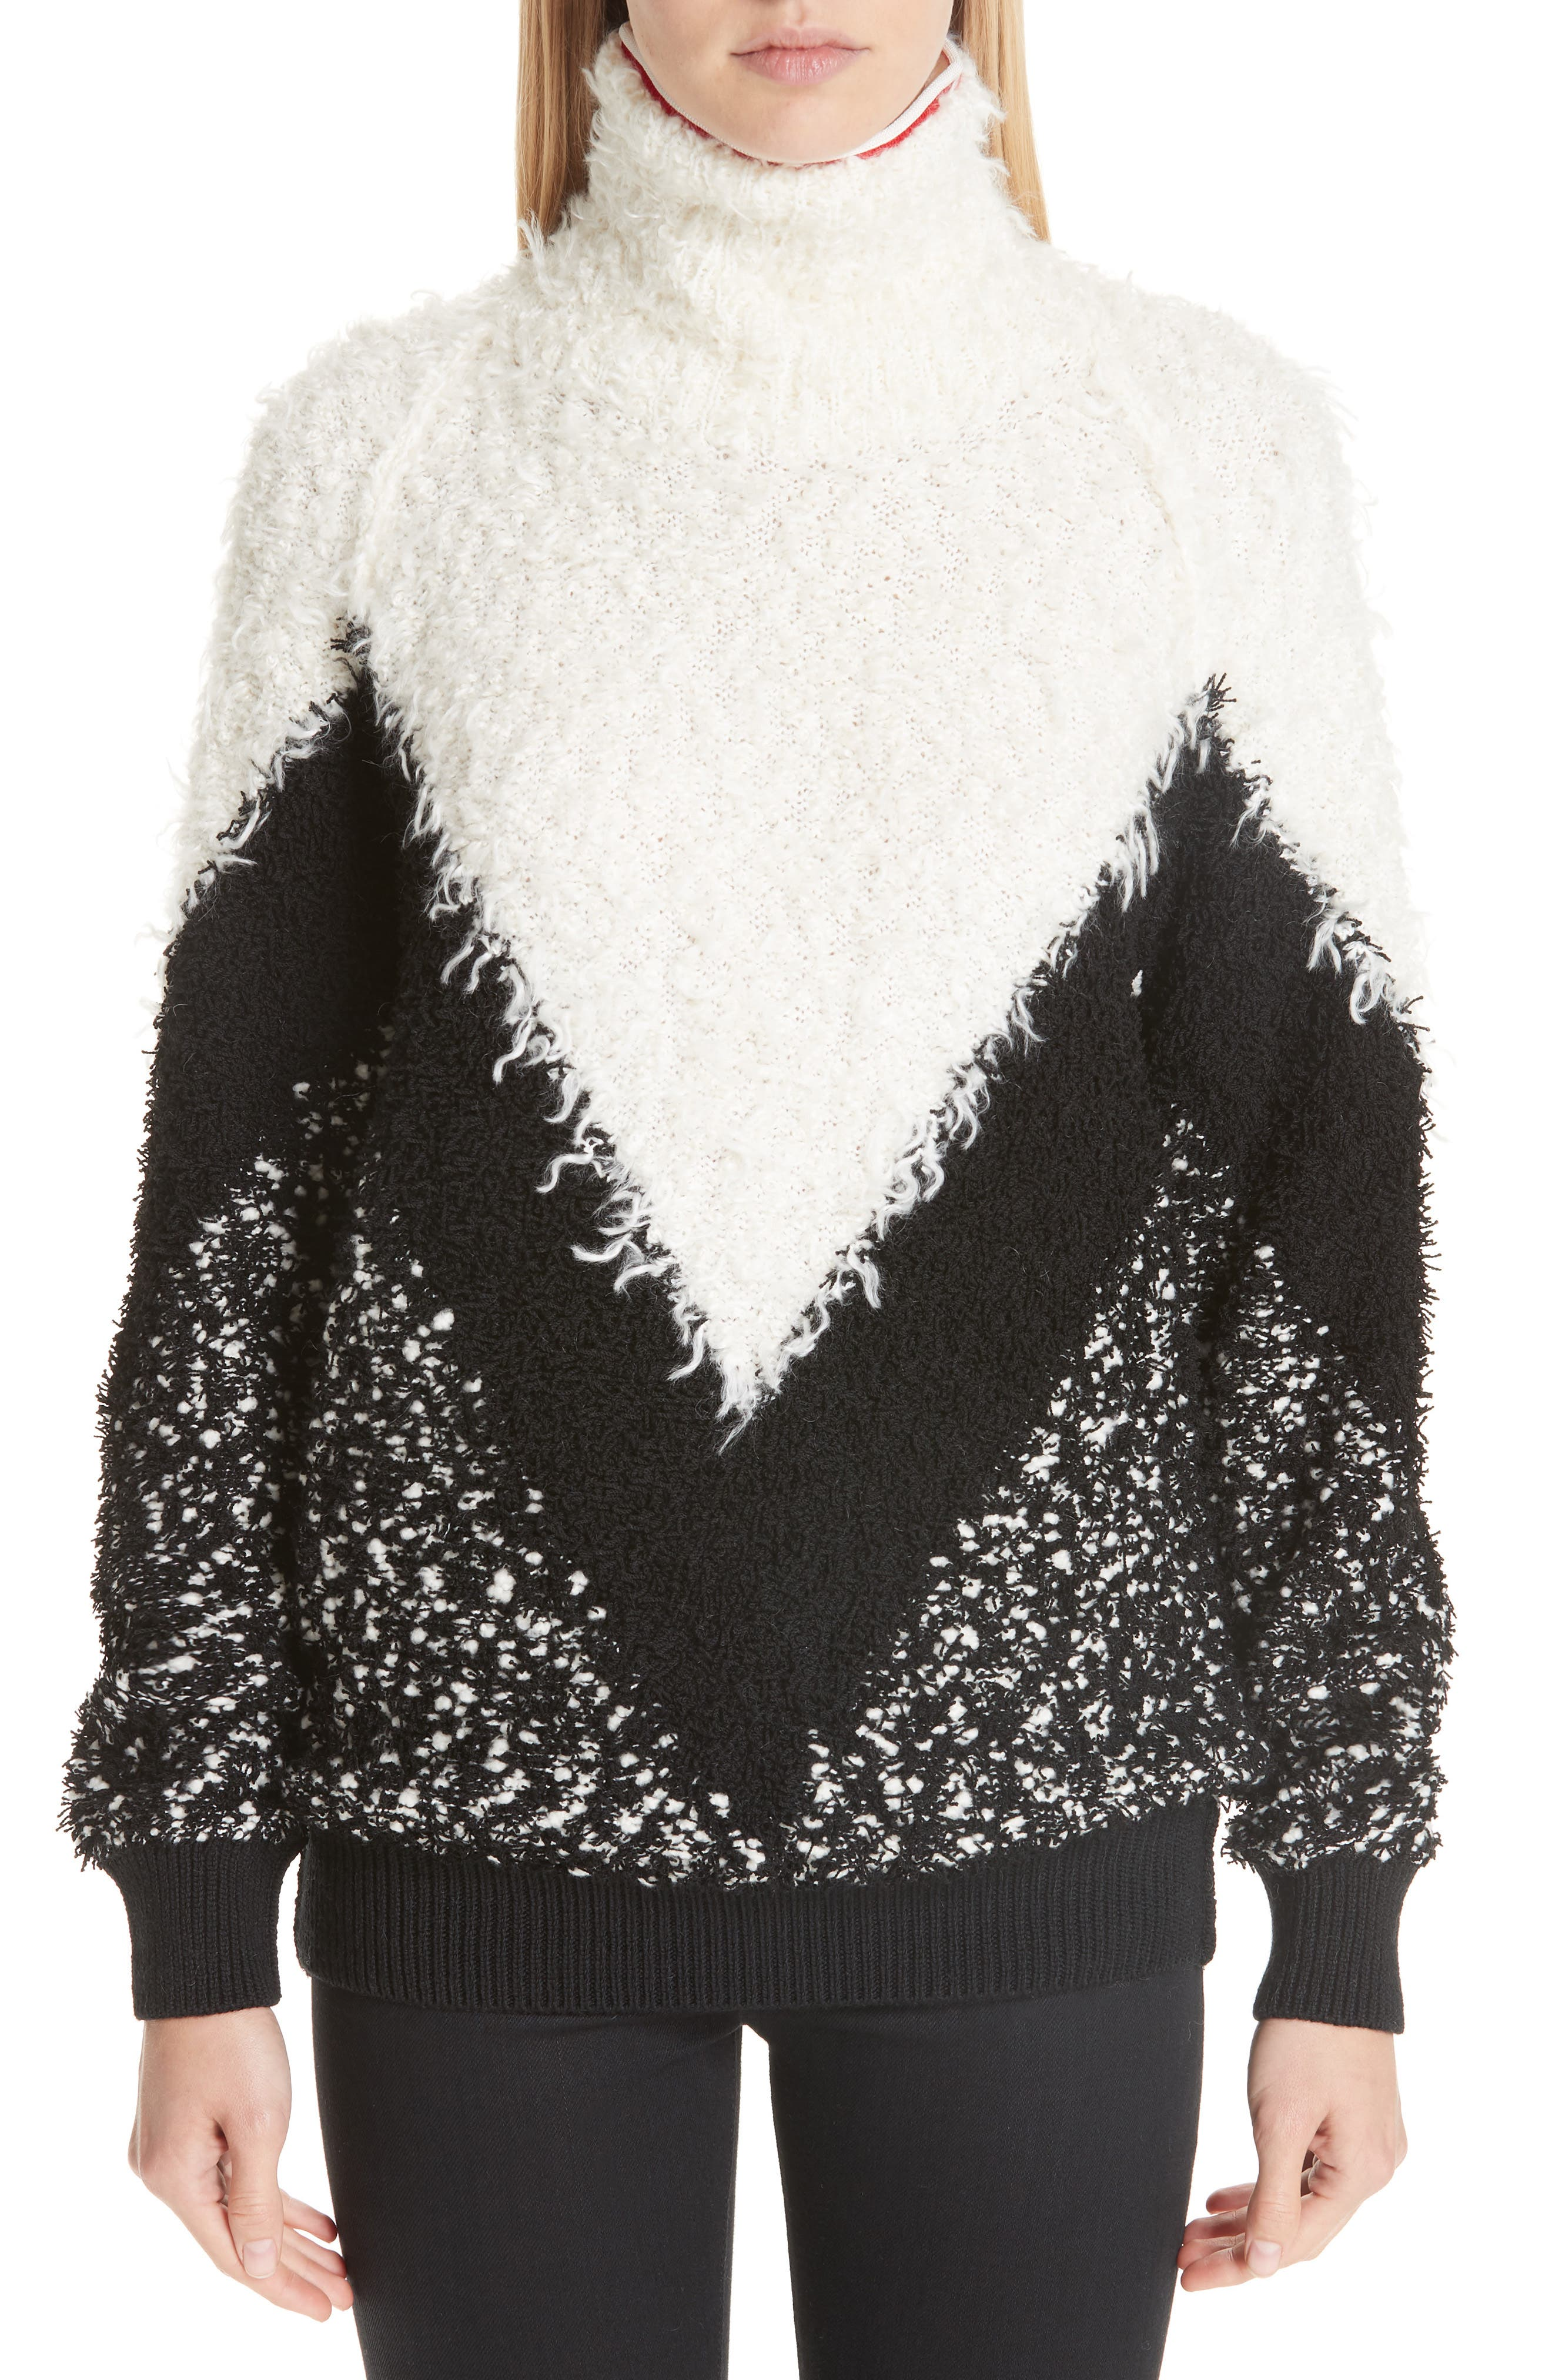 Intarsia Chevron Sweater,                         Main,                         color, BLACK/ GREY/ WHITE